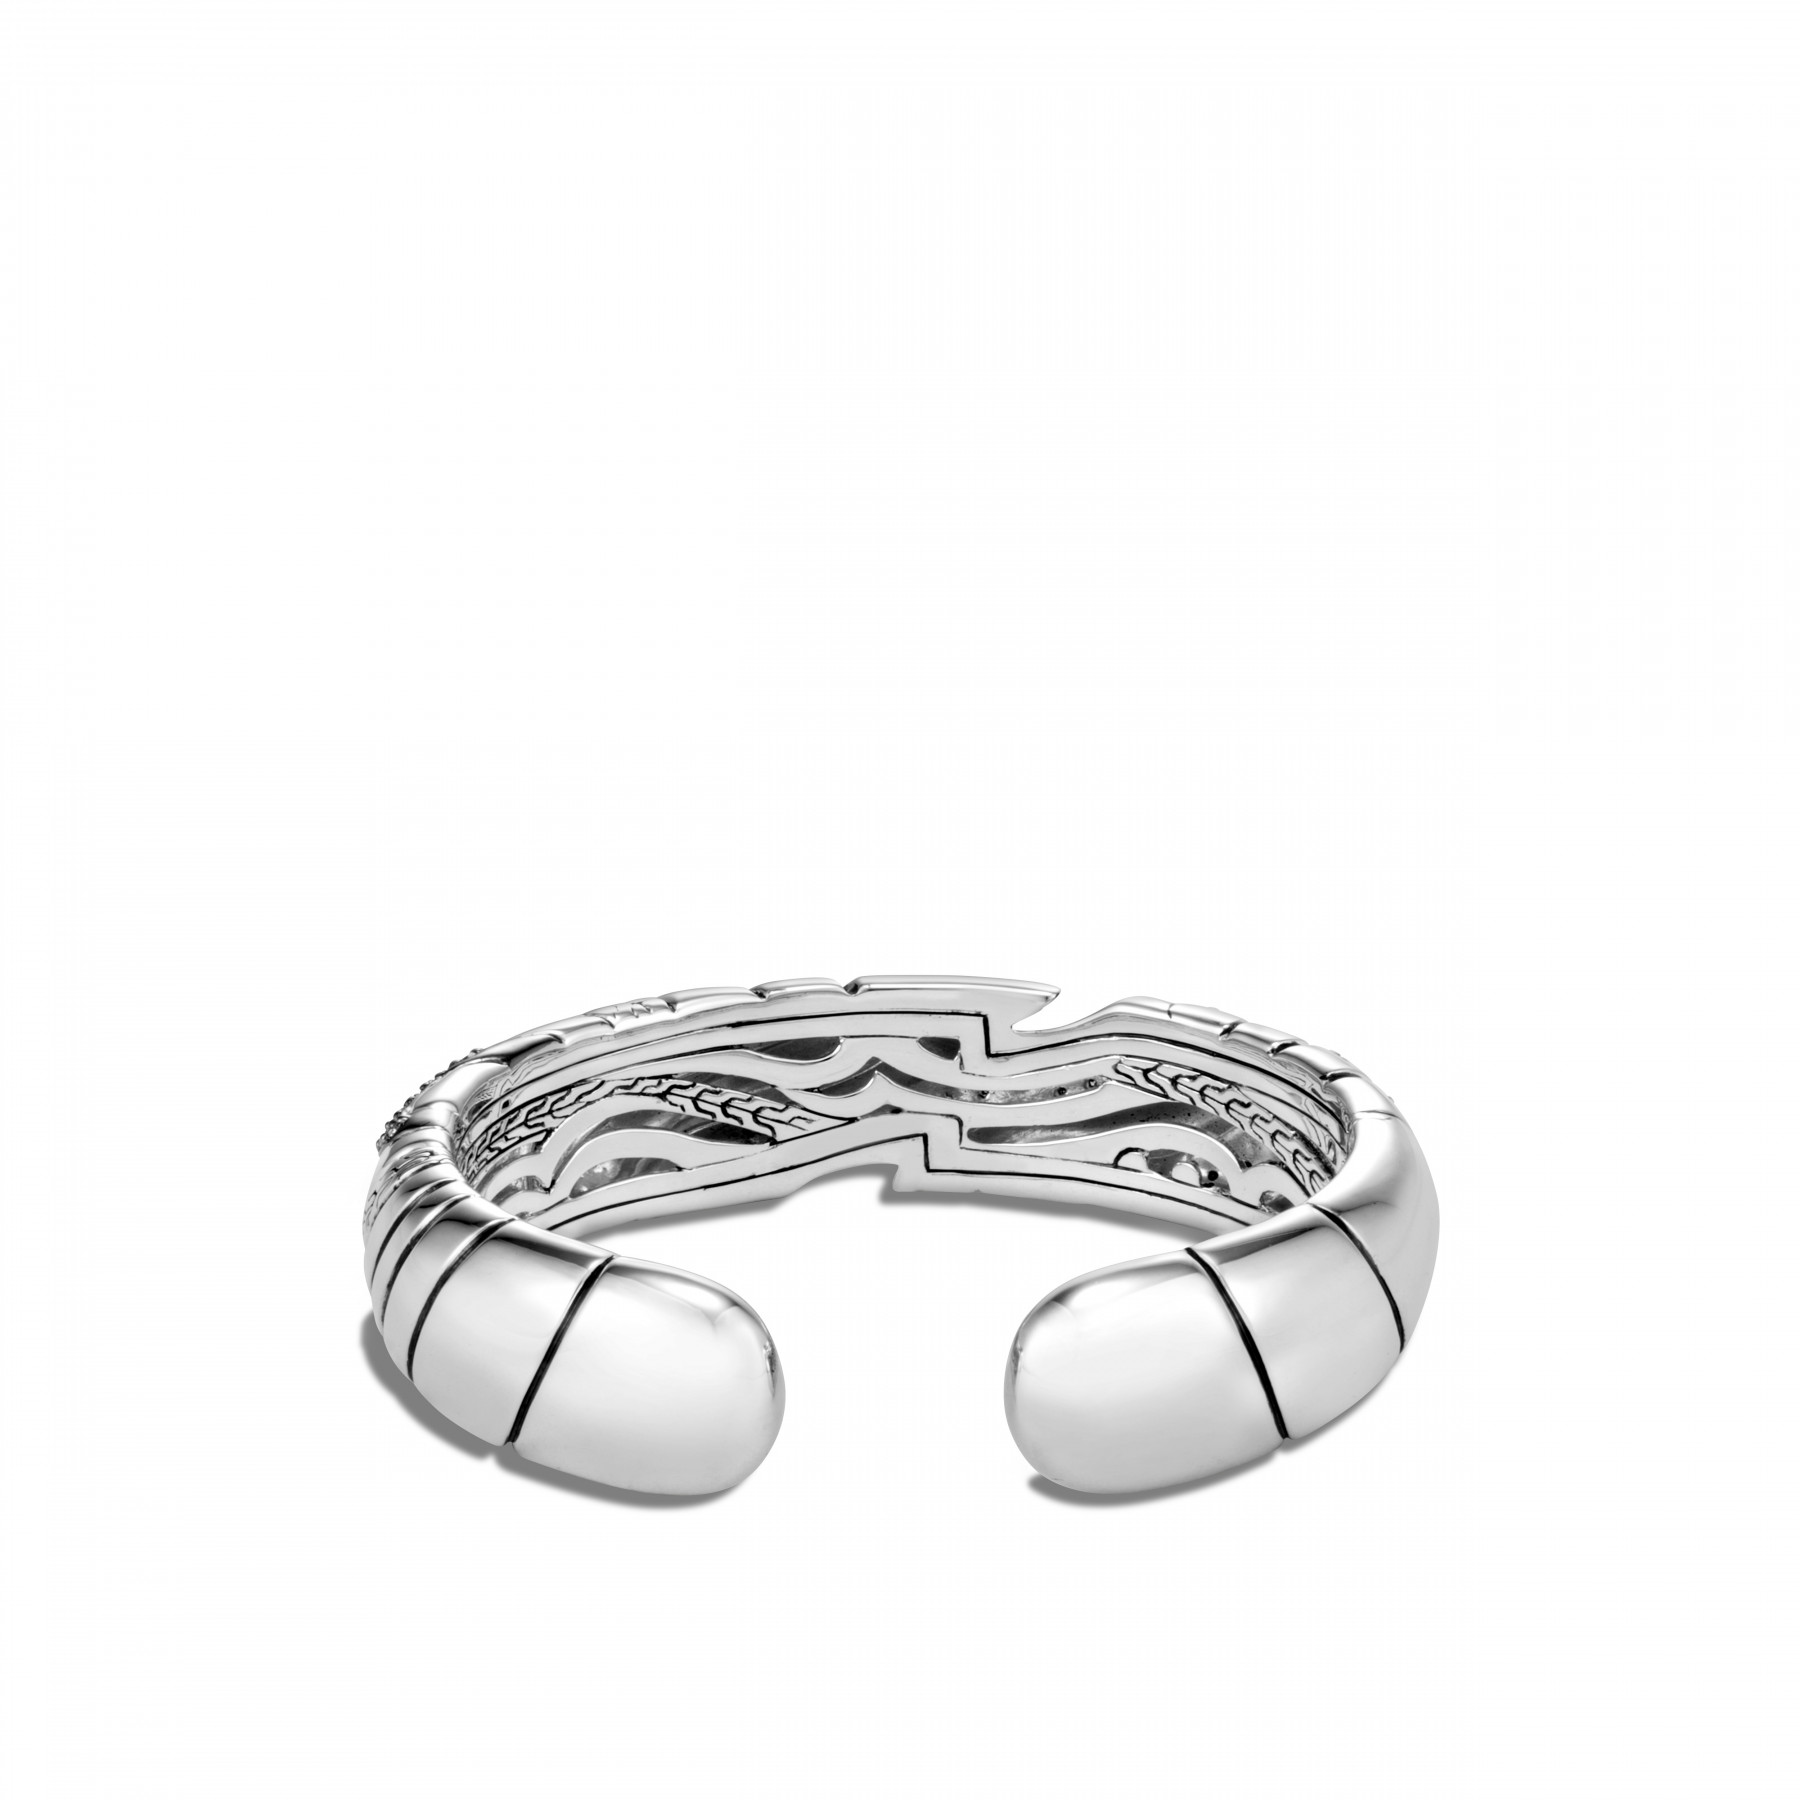 John Hardy Lahar Grey and White Diamond Cuff Bracelet (15mm) back view